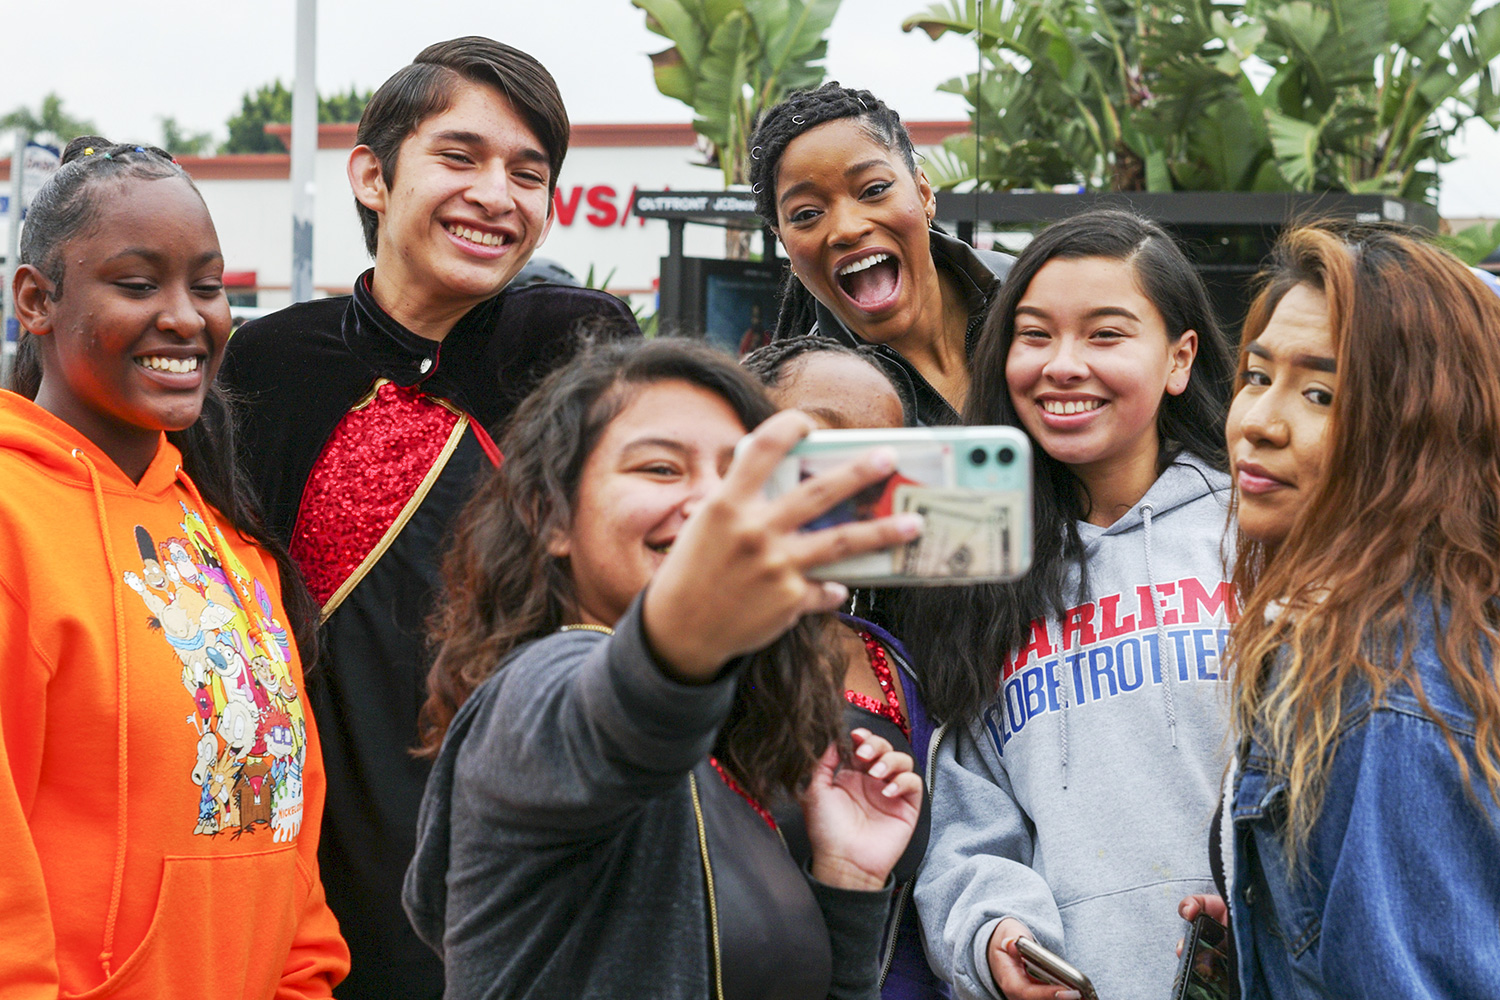 Grand marshal Keke Palmer takes selfie with fans in the 36th annual Kingdom Day Parade in Los Angeles on Monday Jan. 20, 2020